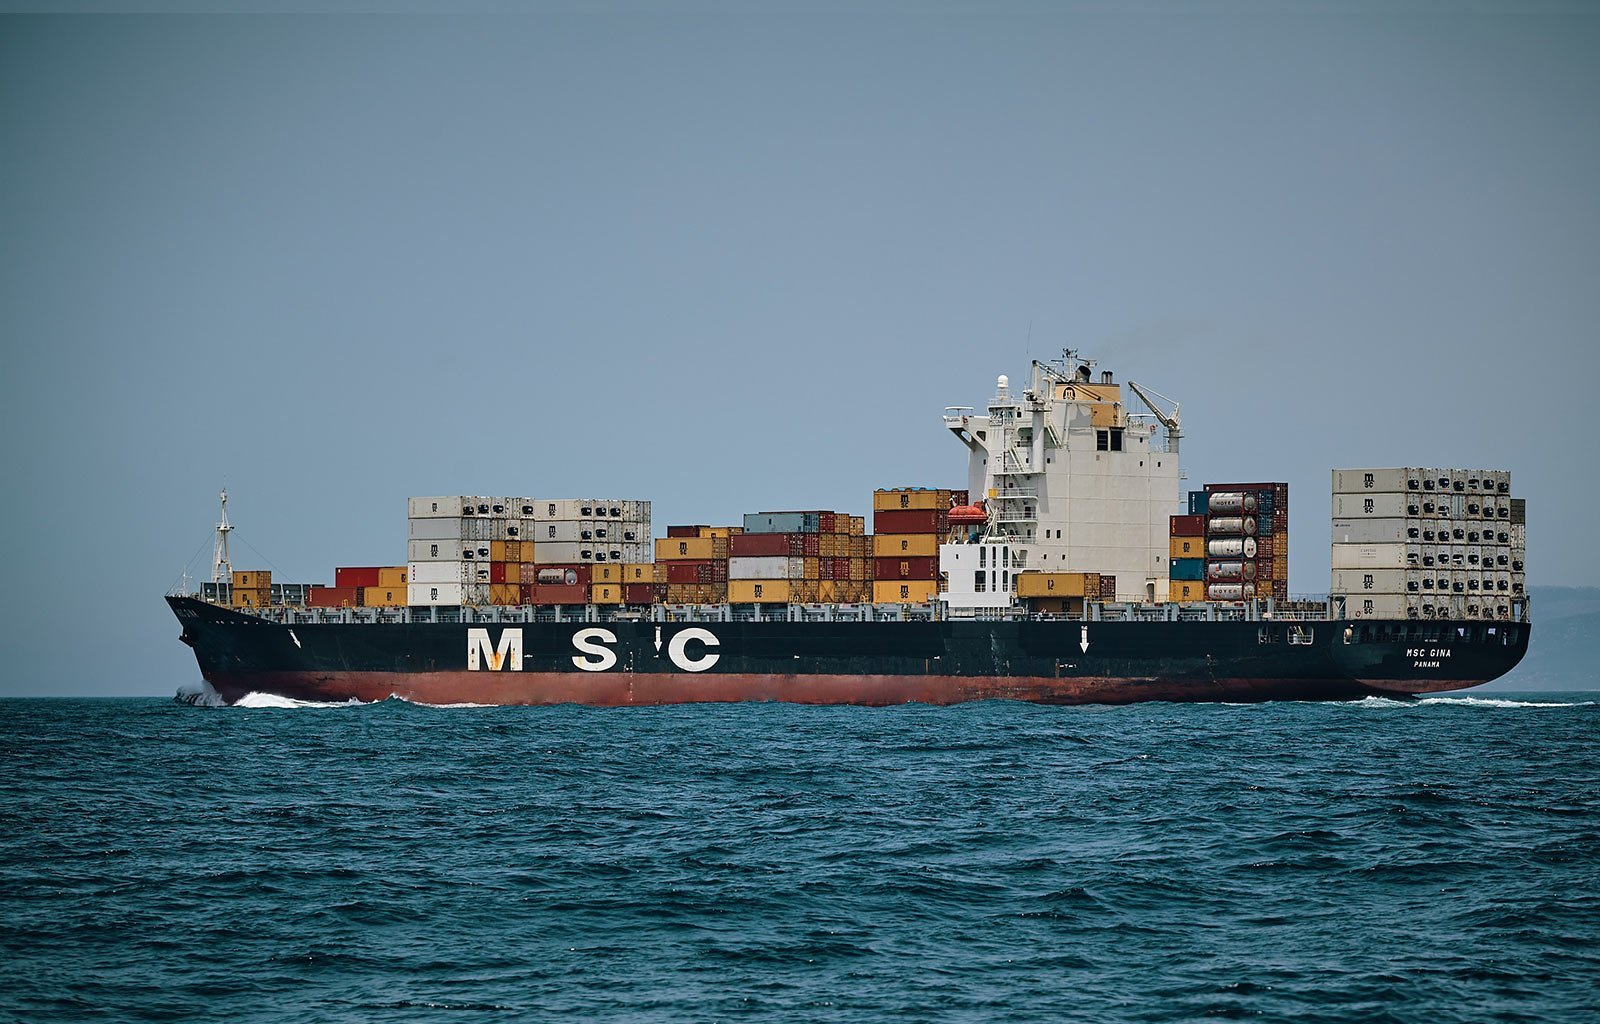 Ship full of containers at sea